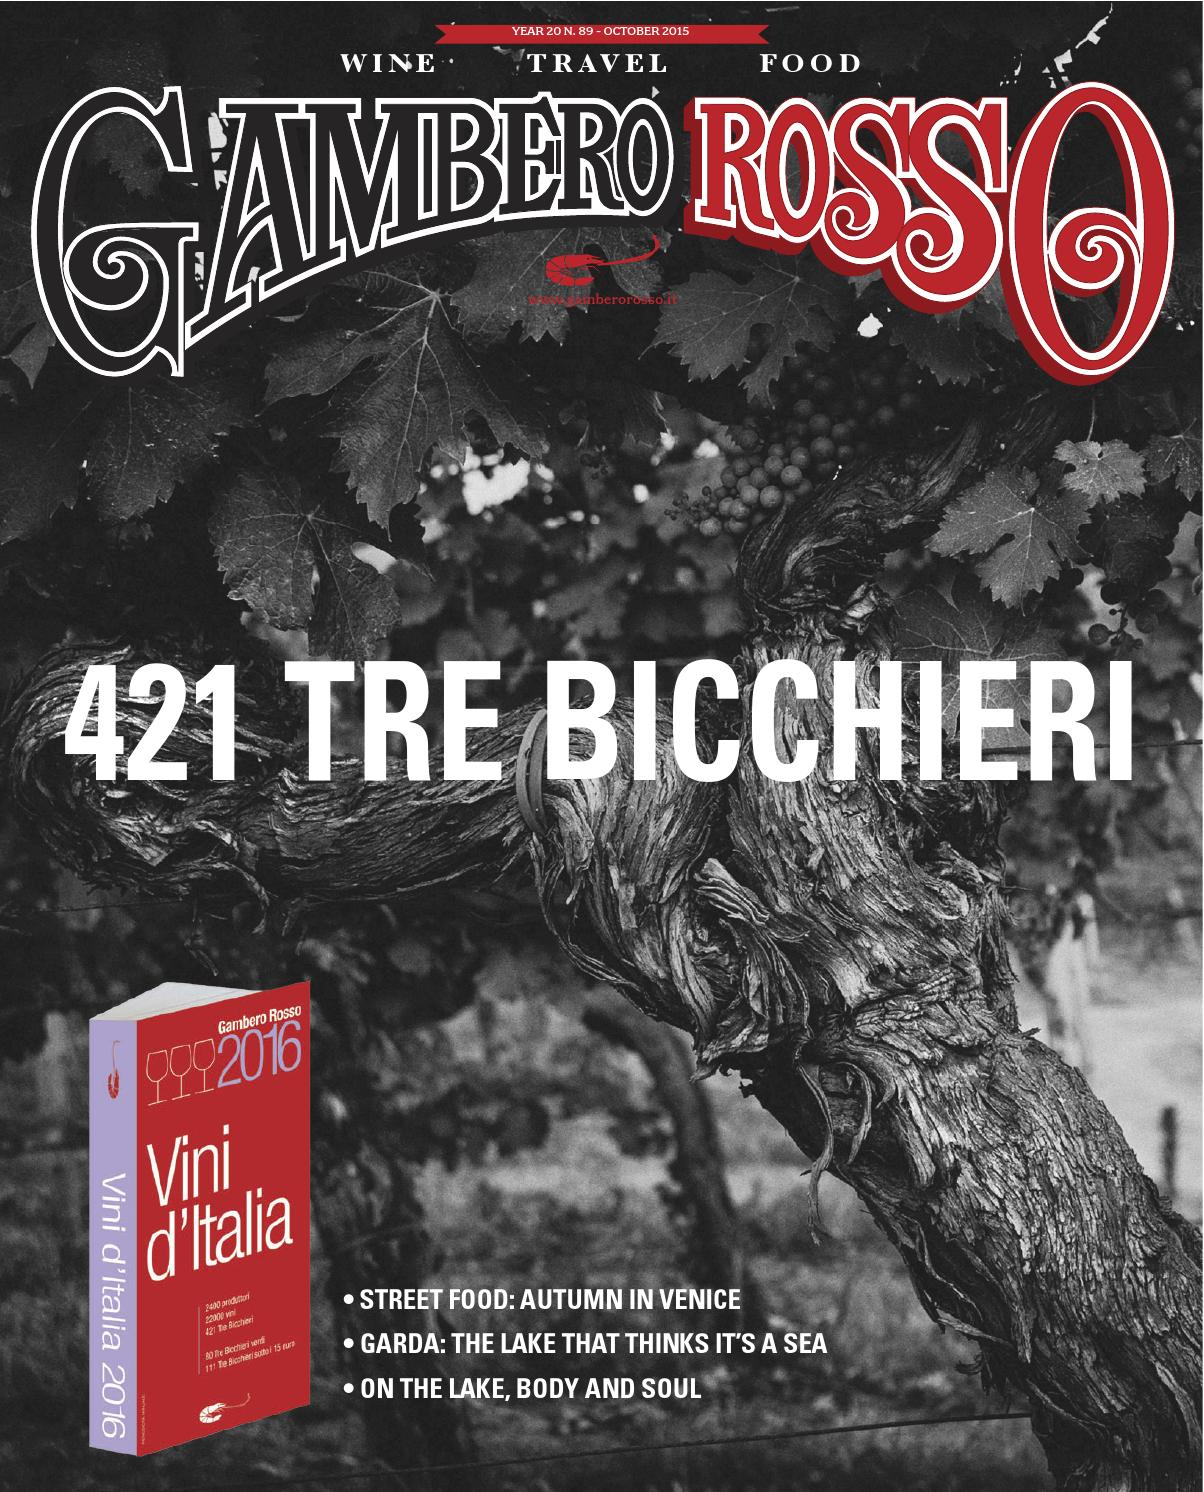 Wine Travel Food October 2015 By Gambero Rosso Issuu